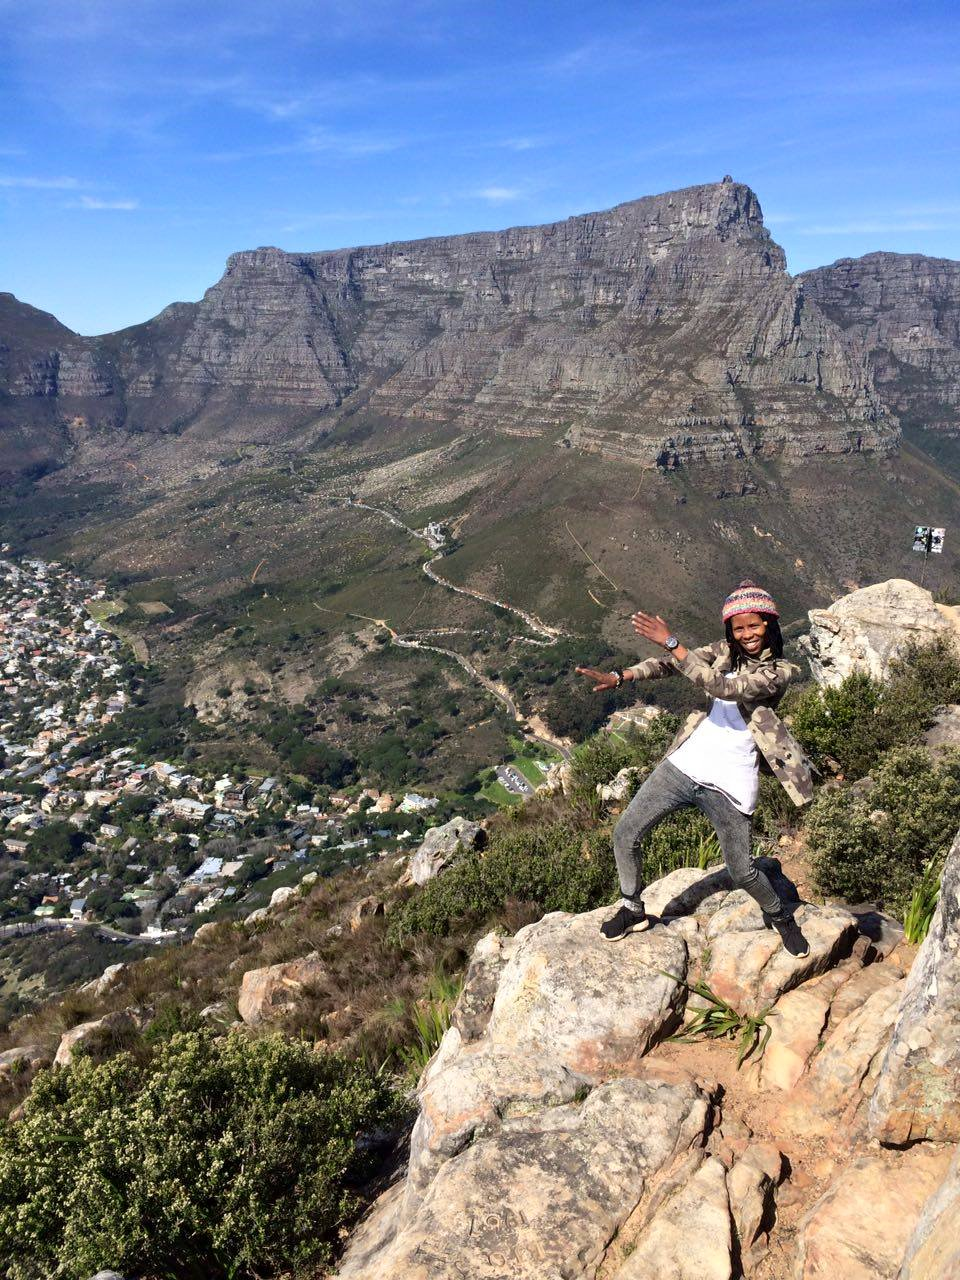 Worldpackers experience - The Backpack - Cape Town - South Africa